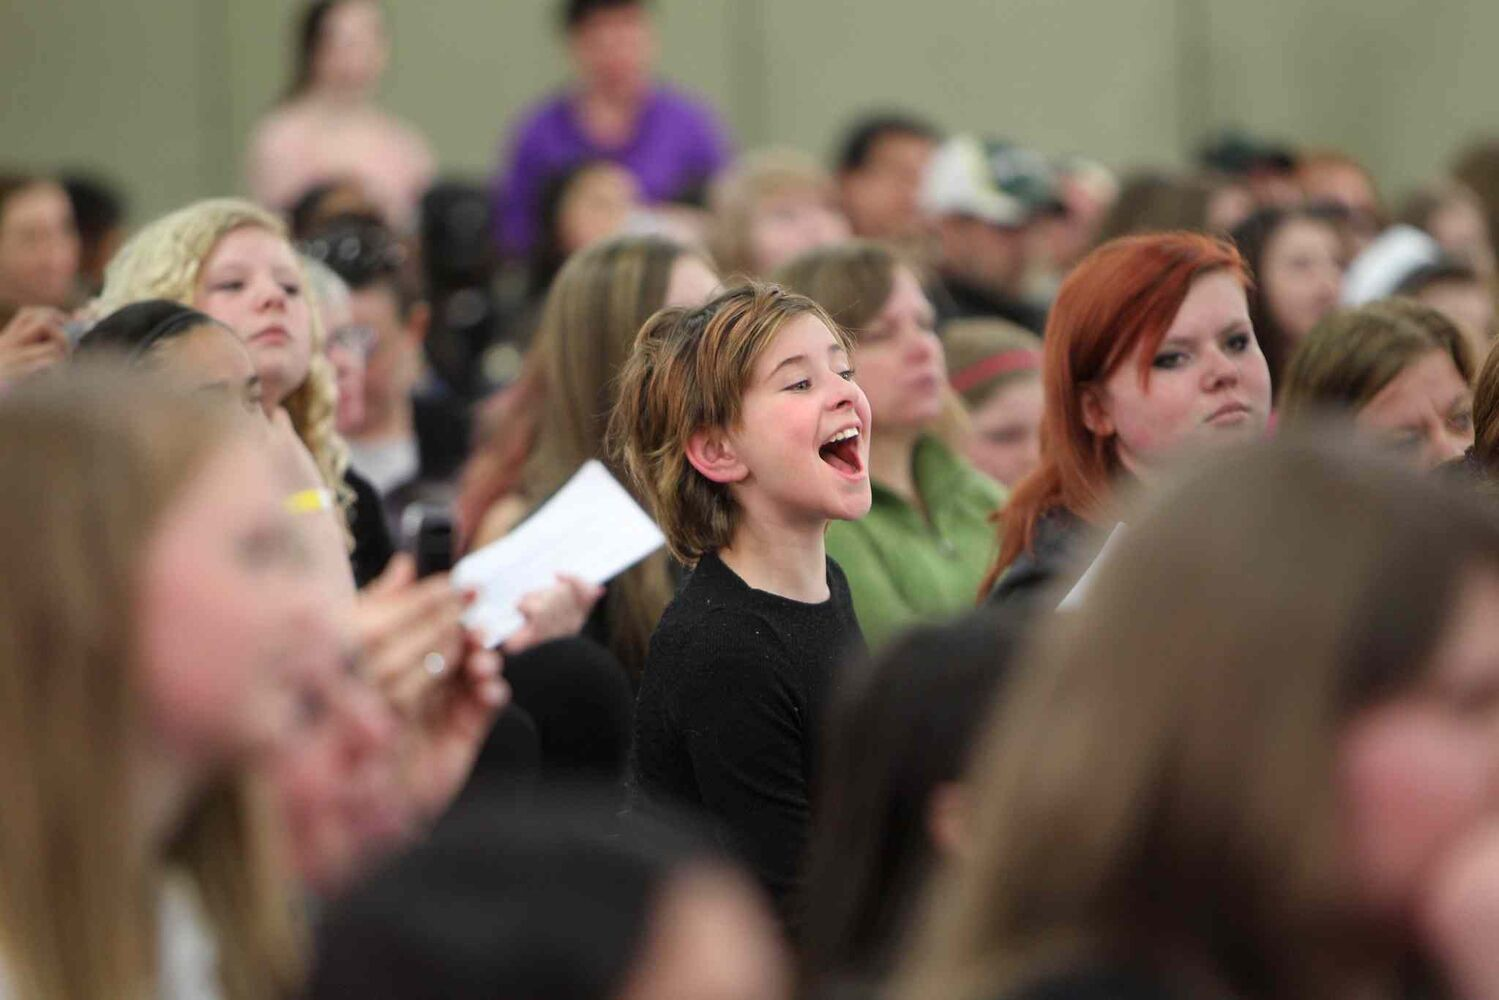 Hundreds of kids show their excitement while waiting in lineups to audition for Next Star at the  convention centre Saturday.    (Ruth Bonneville / Winnipeg Free Press)